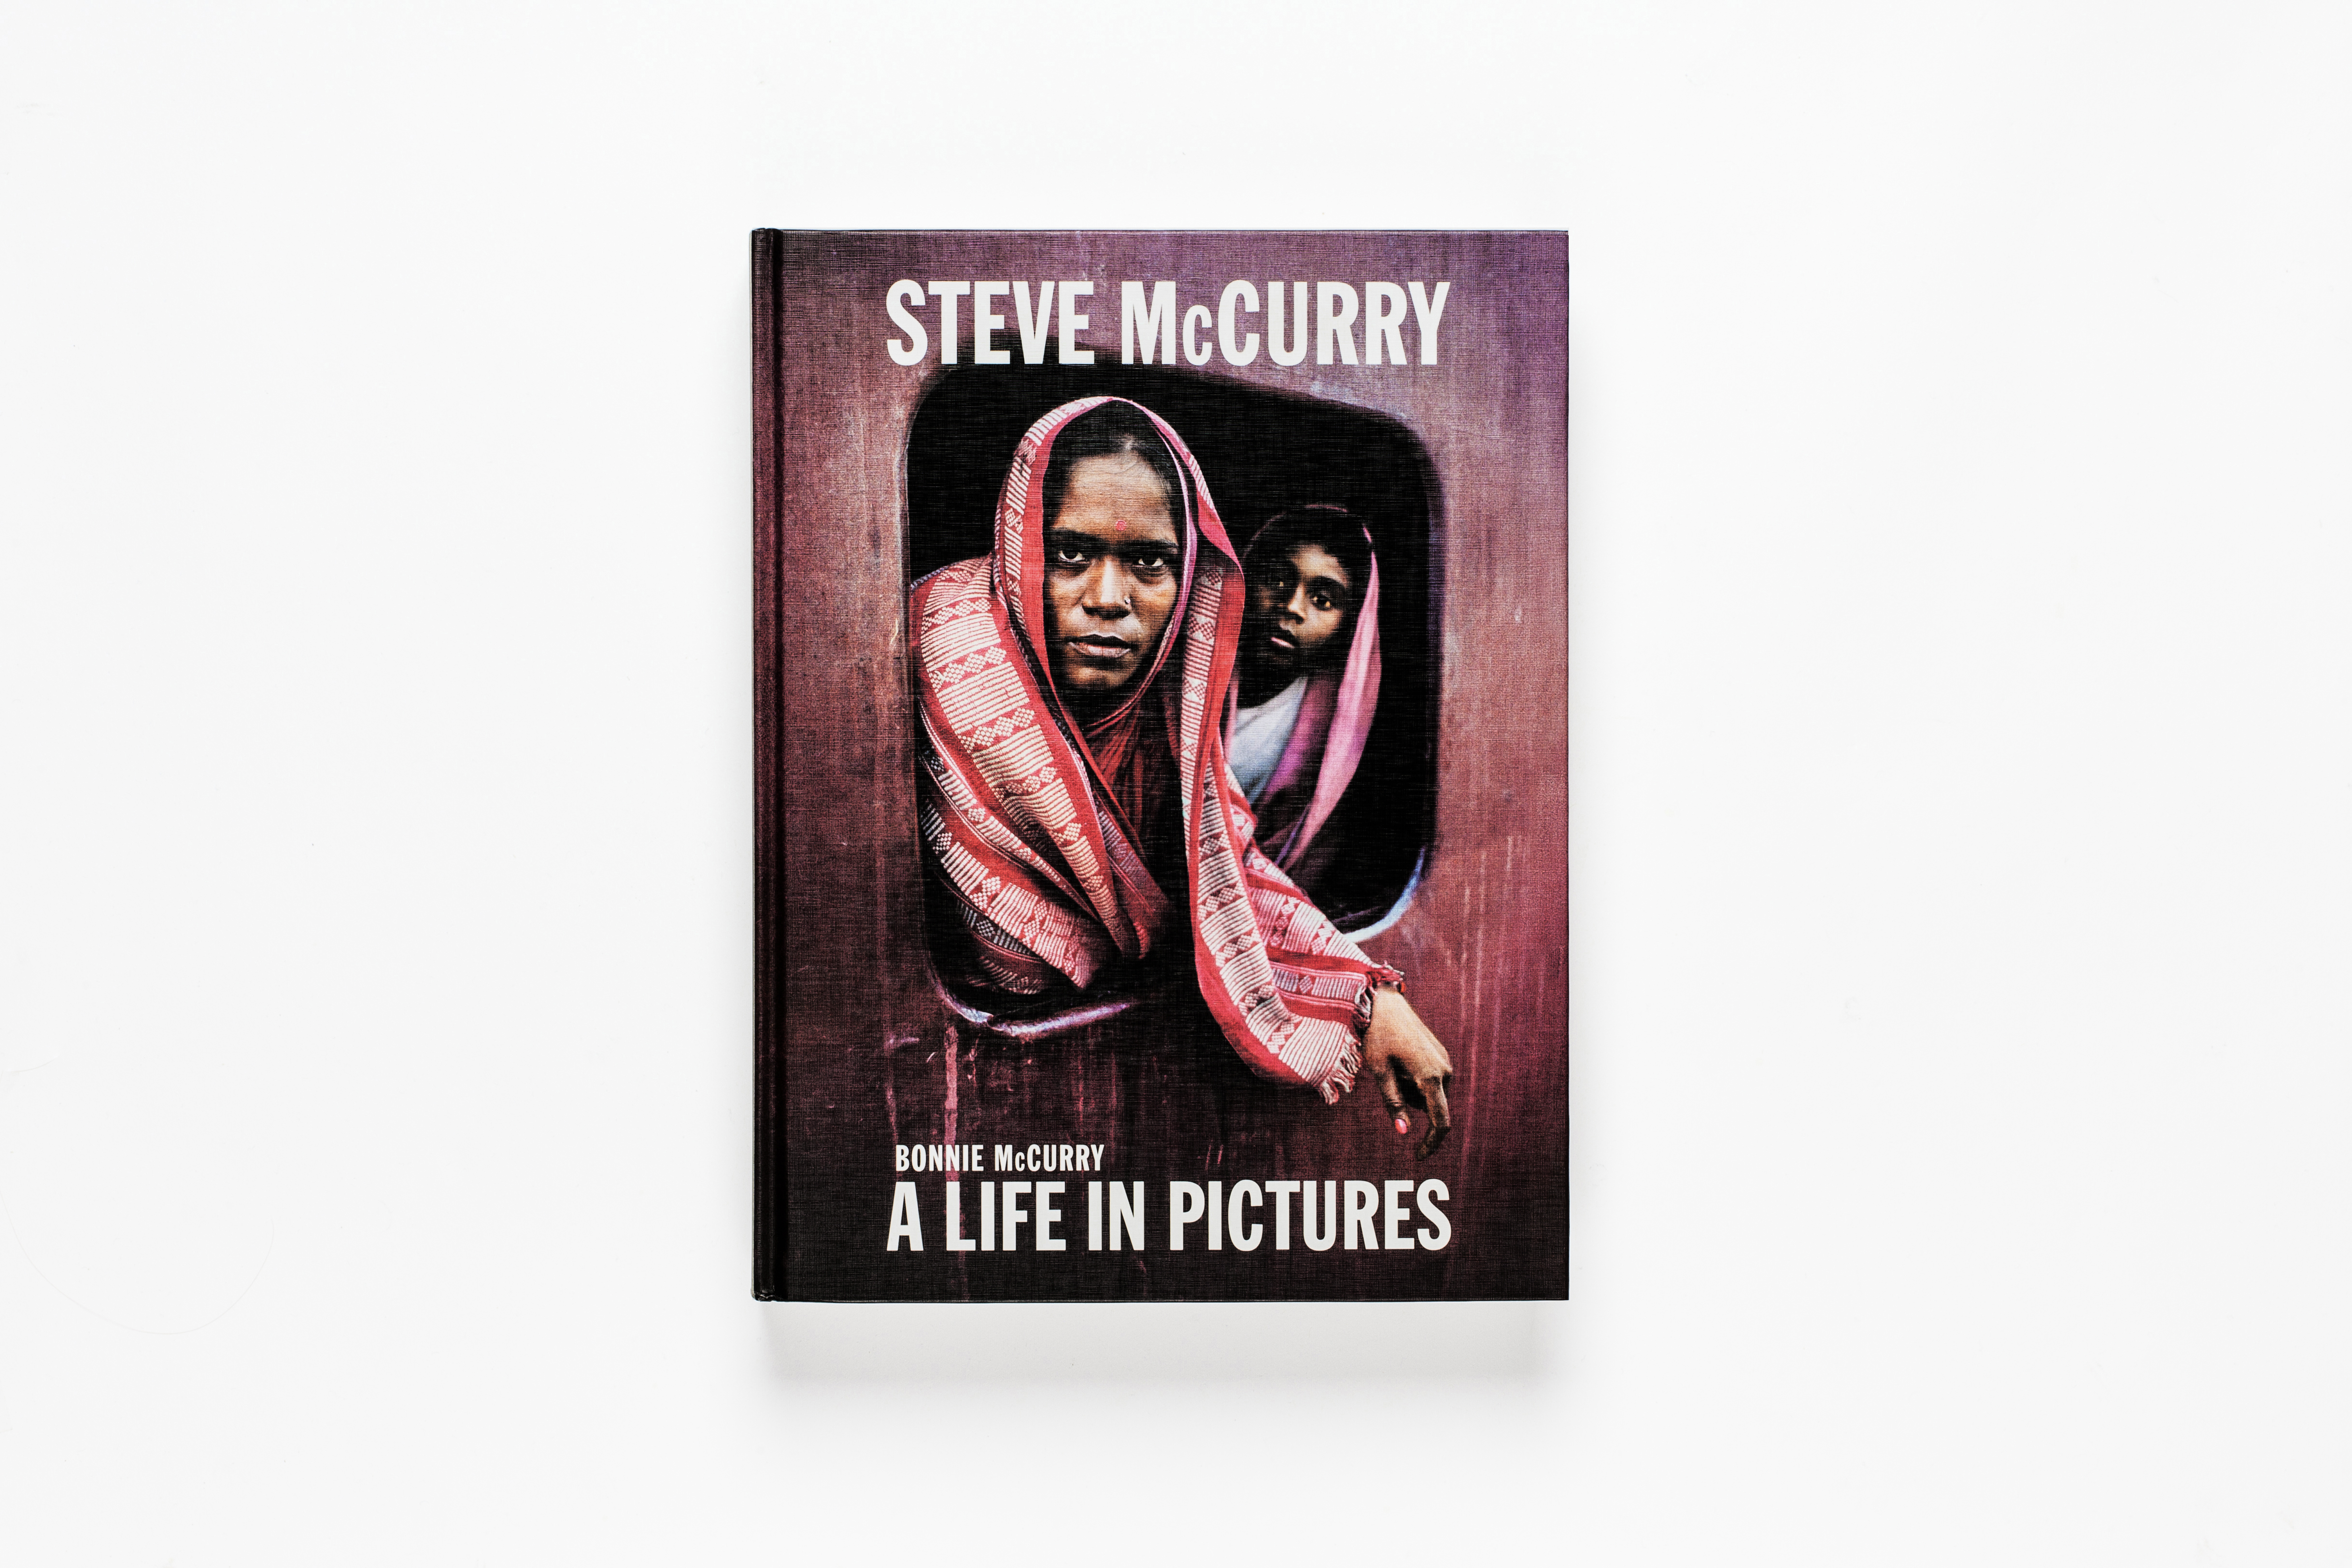 From Steve McCurry: a Life in Pictures. Courtesy of Laurence King Publishing.